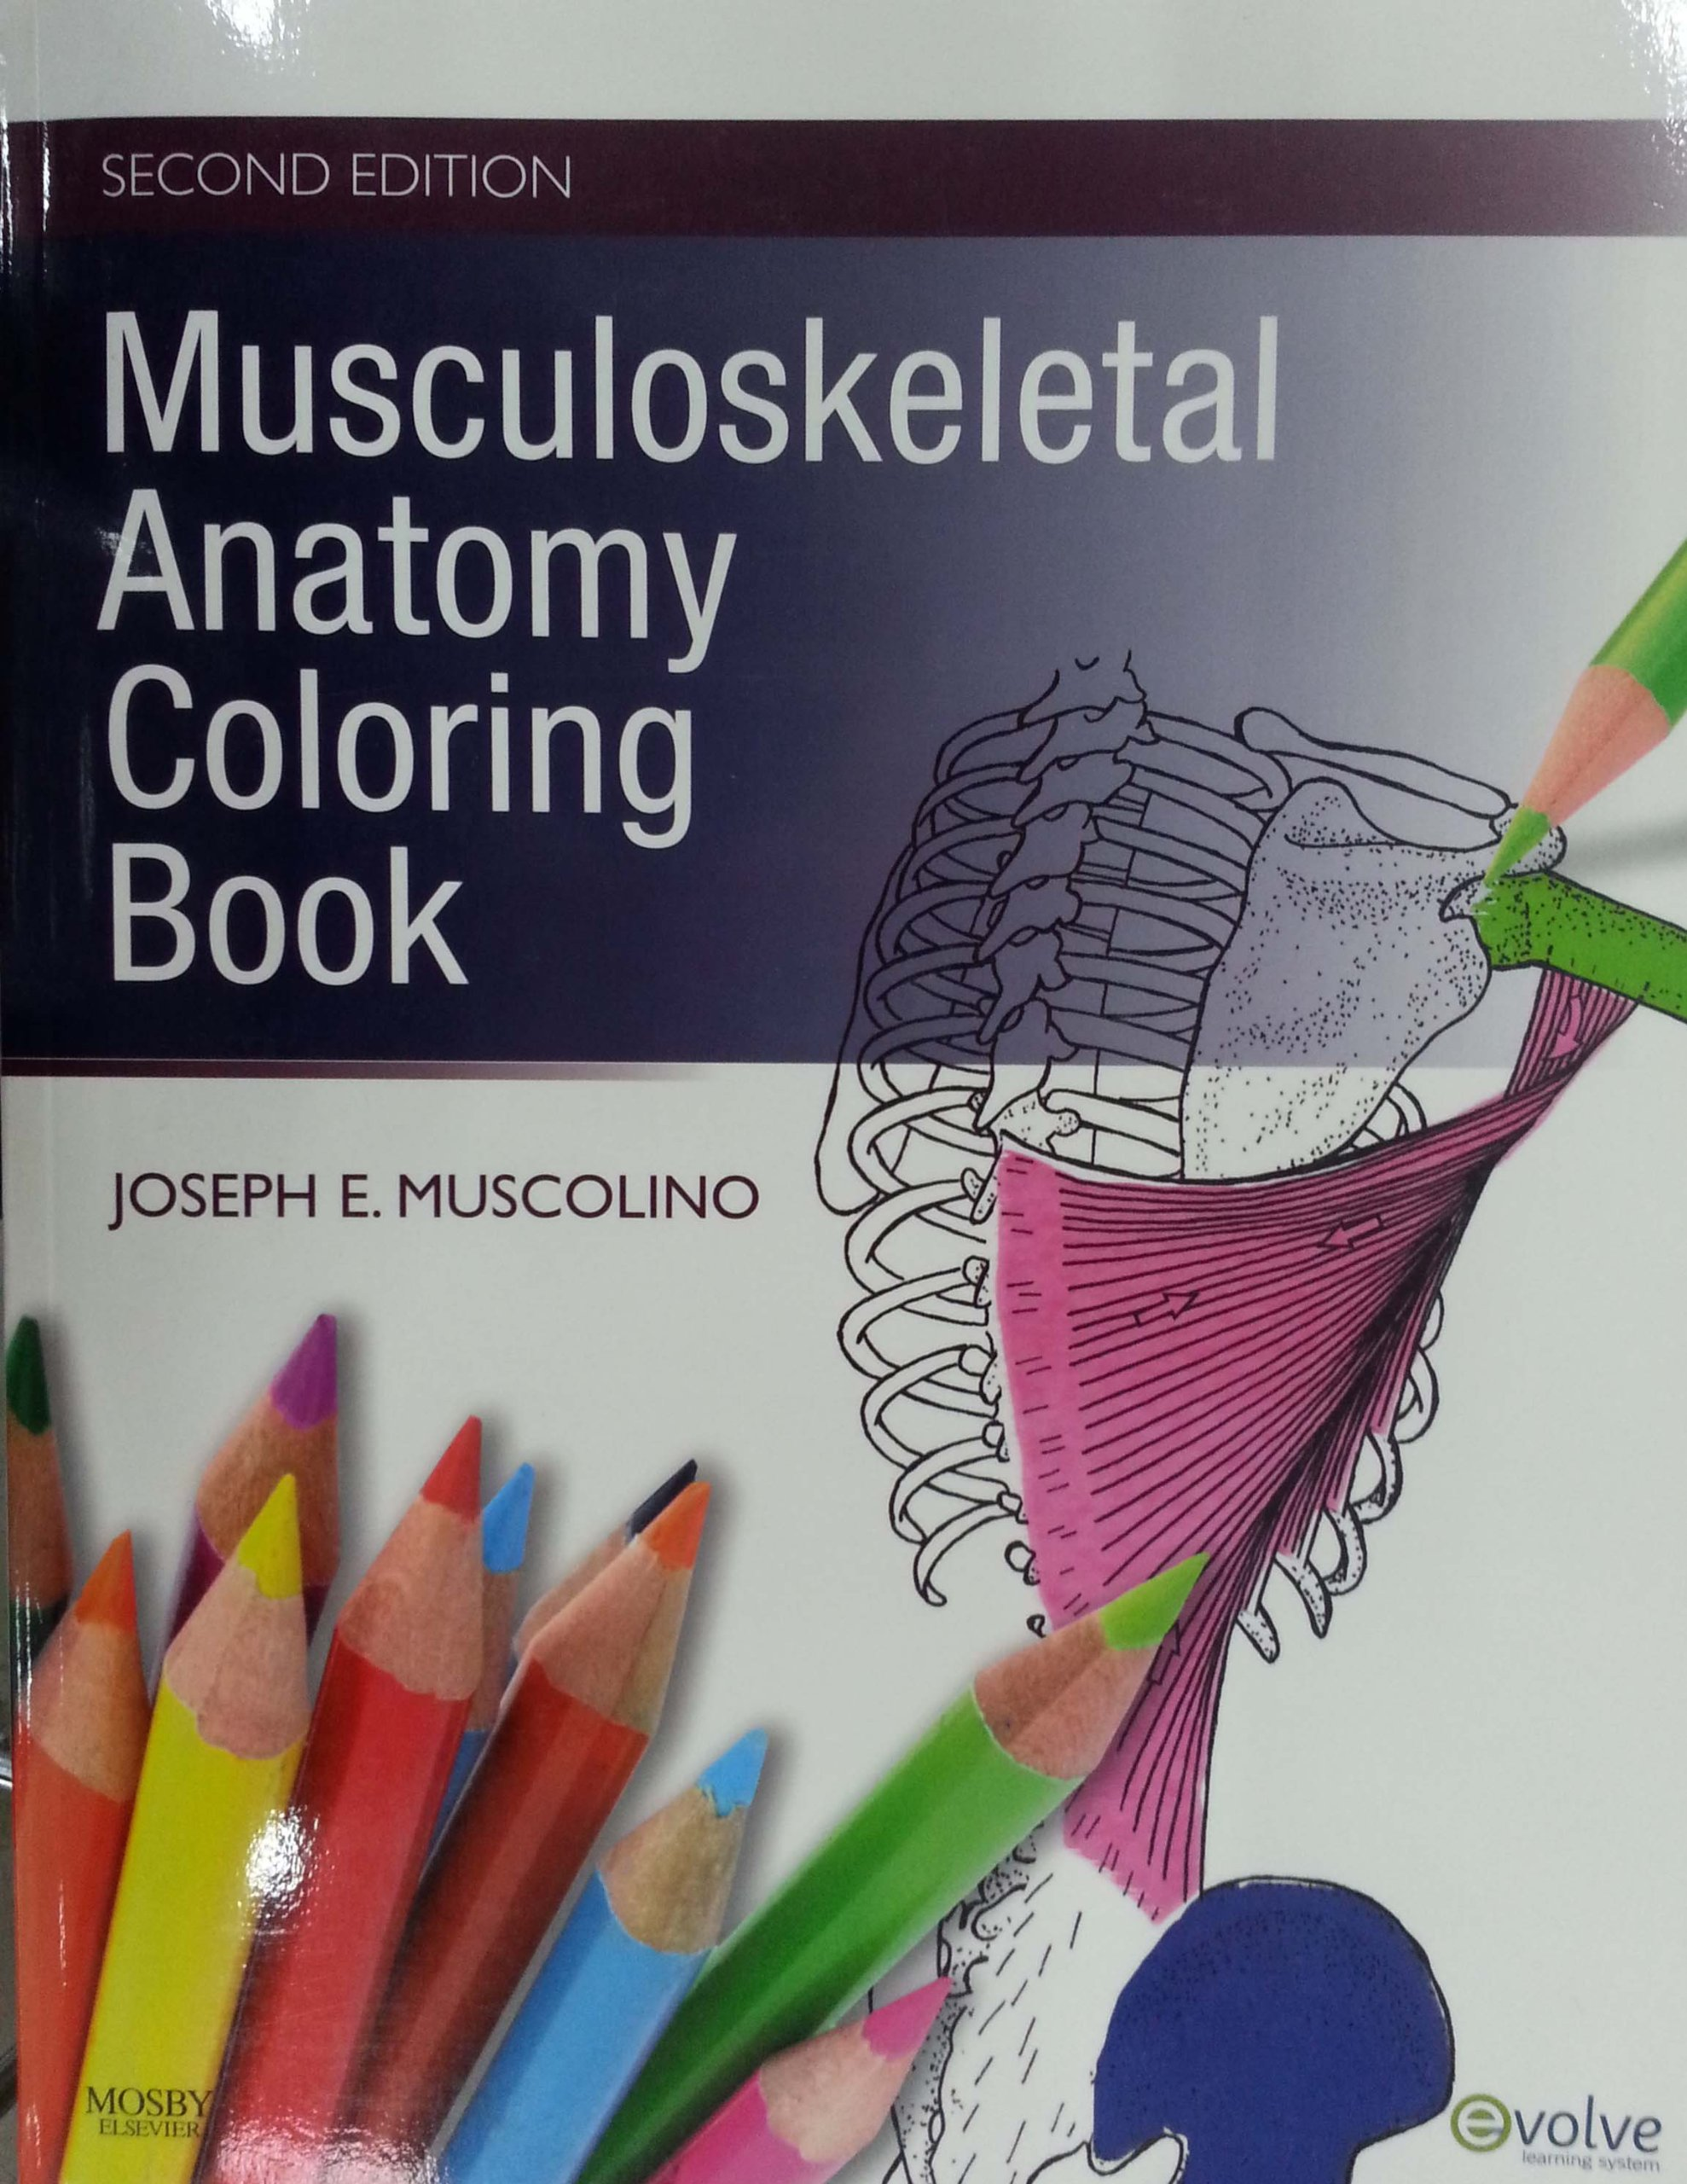 Musculoskeletal Anatomy Coloring Book 2e Amazon Joseph E